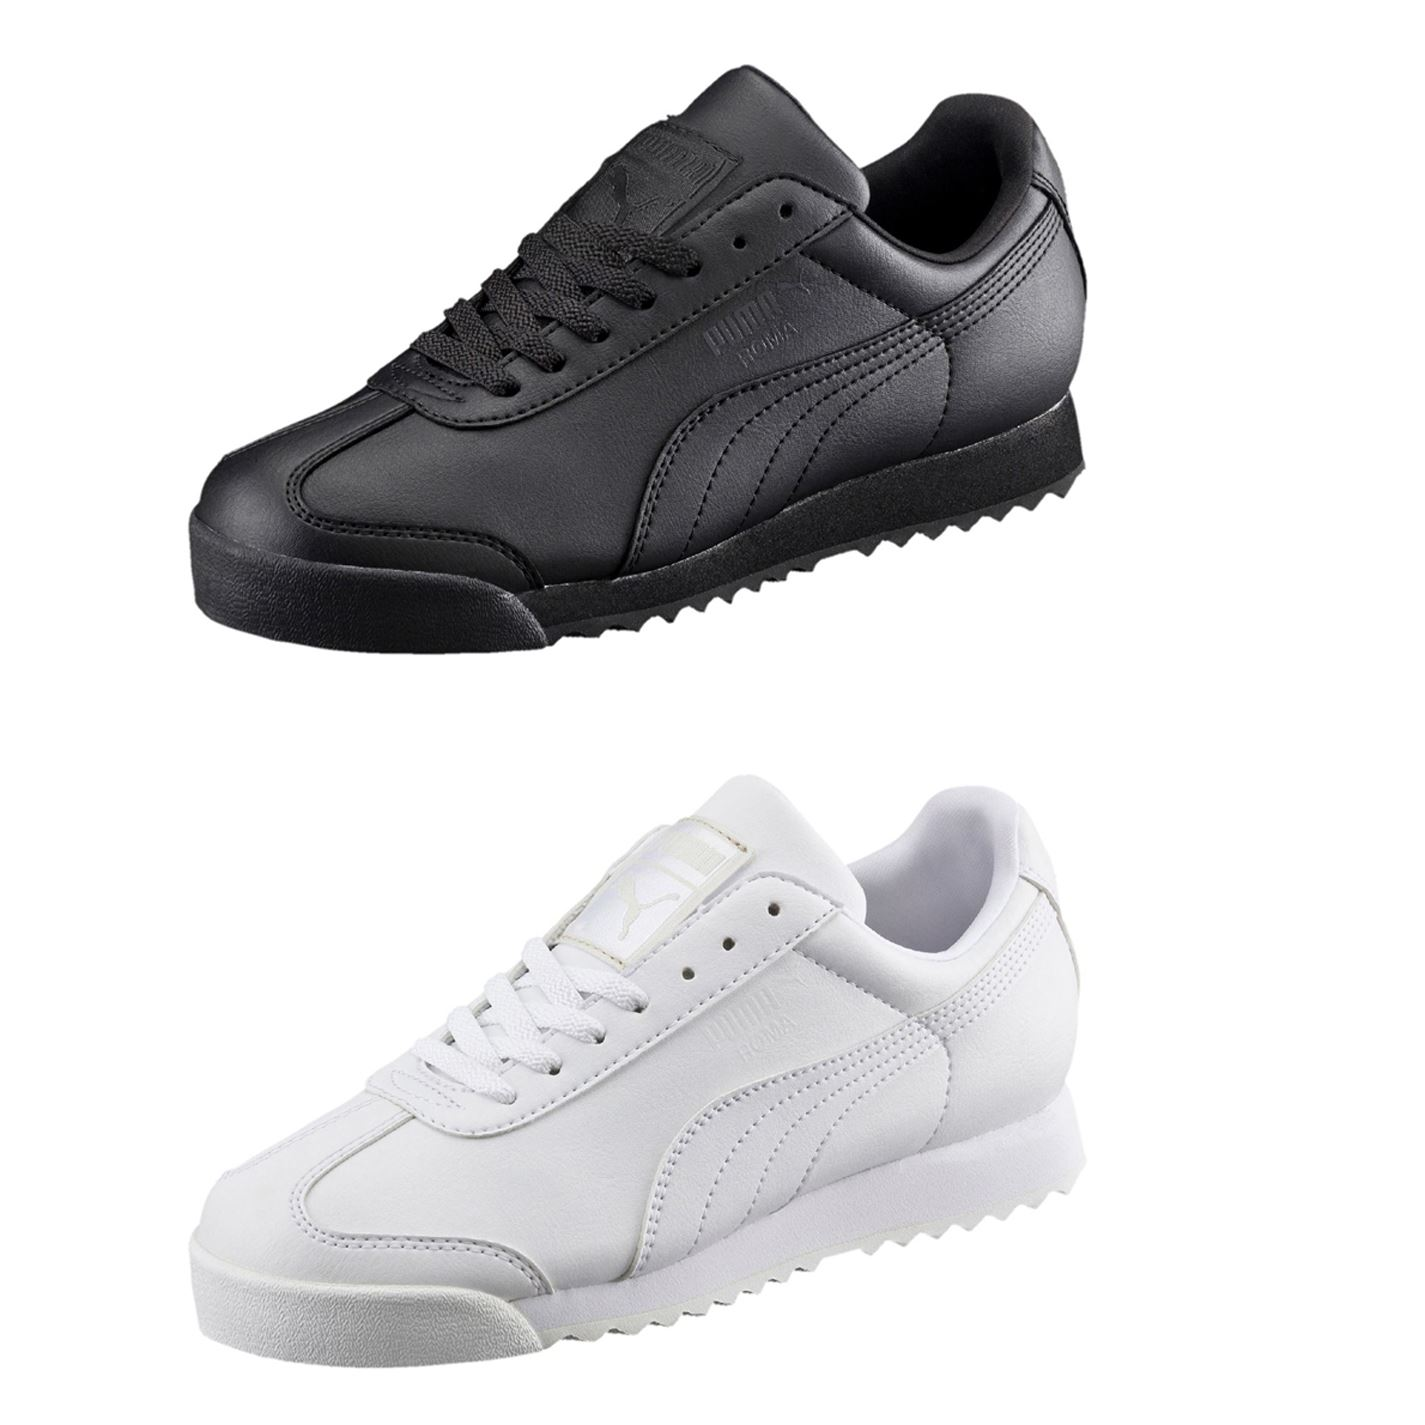 Details about Puma Roma Basic Trainers Juniors Boys Shoes Sneakers Kids  Footwear